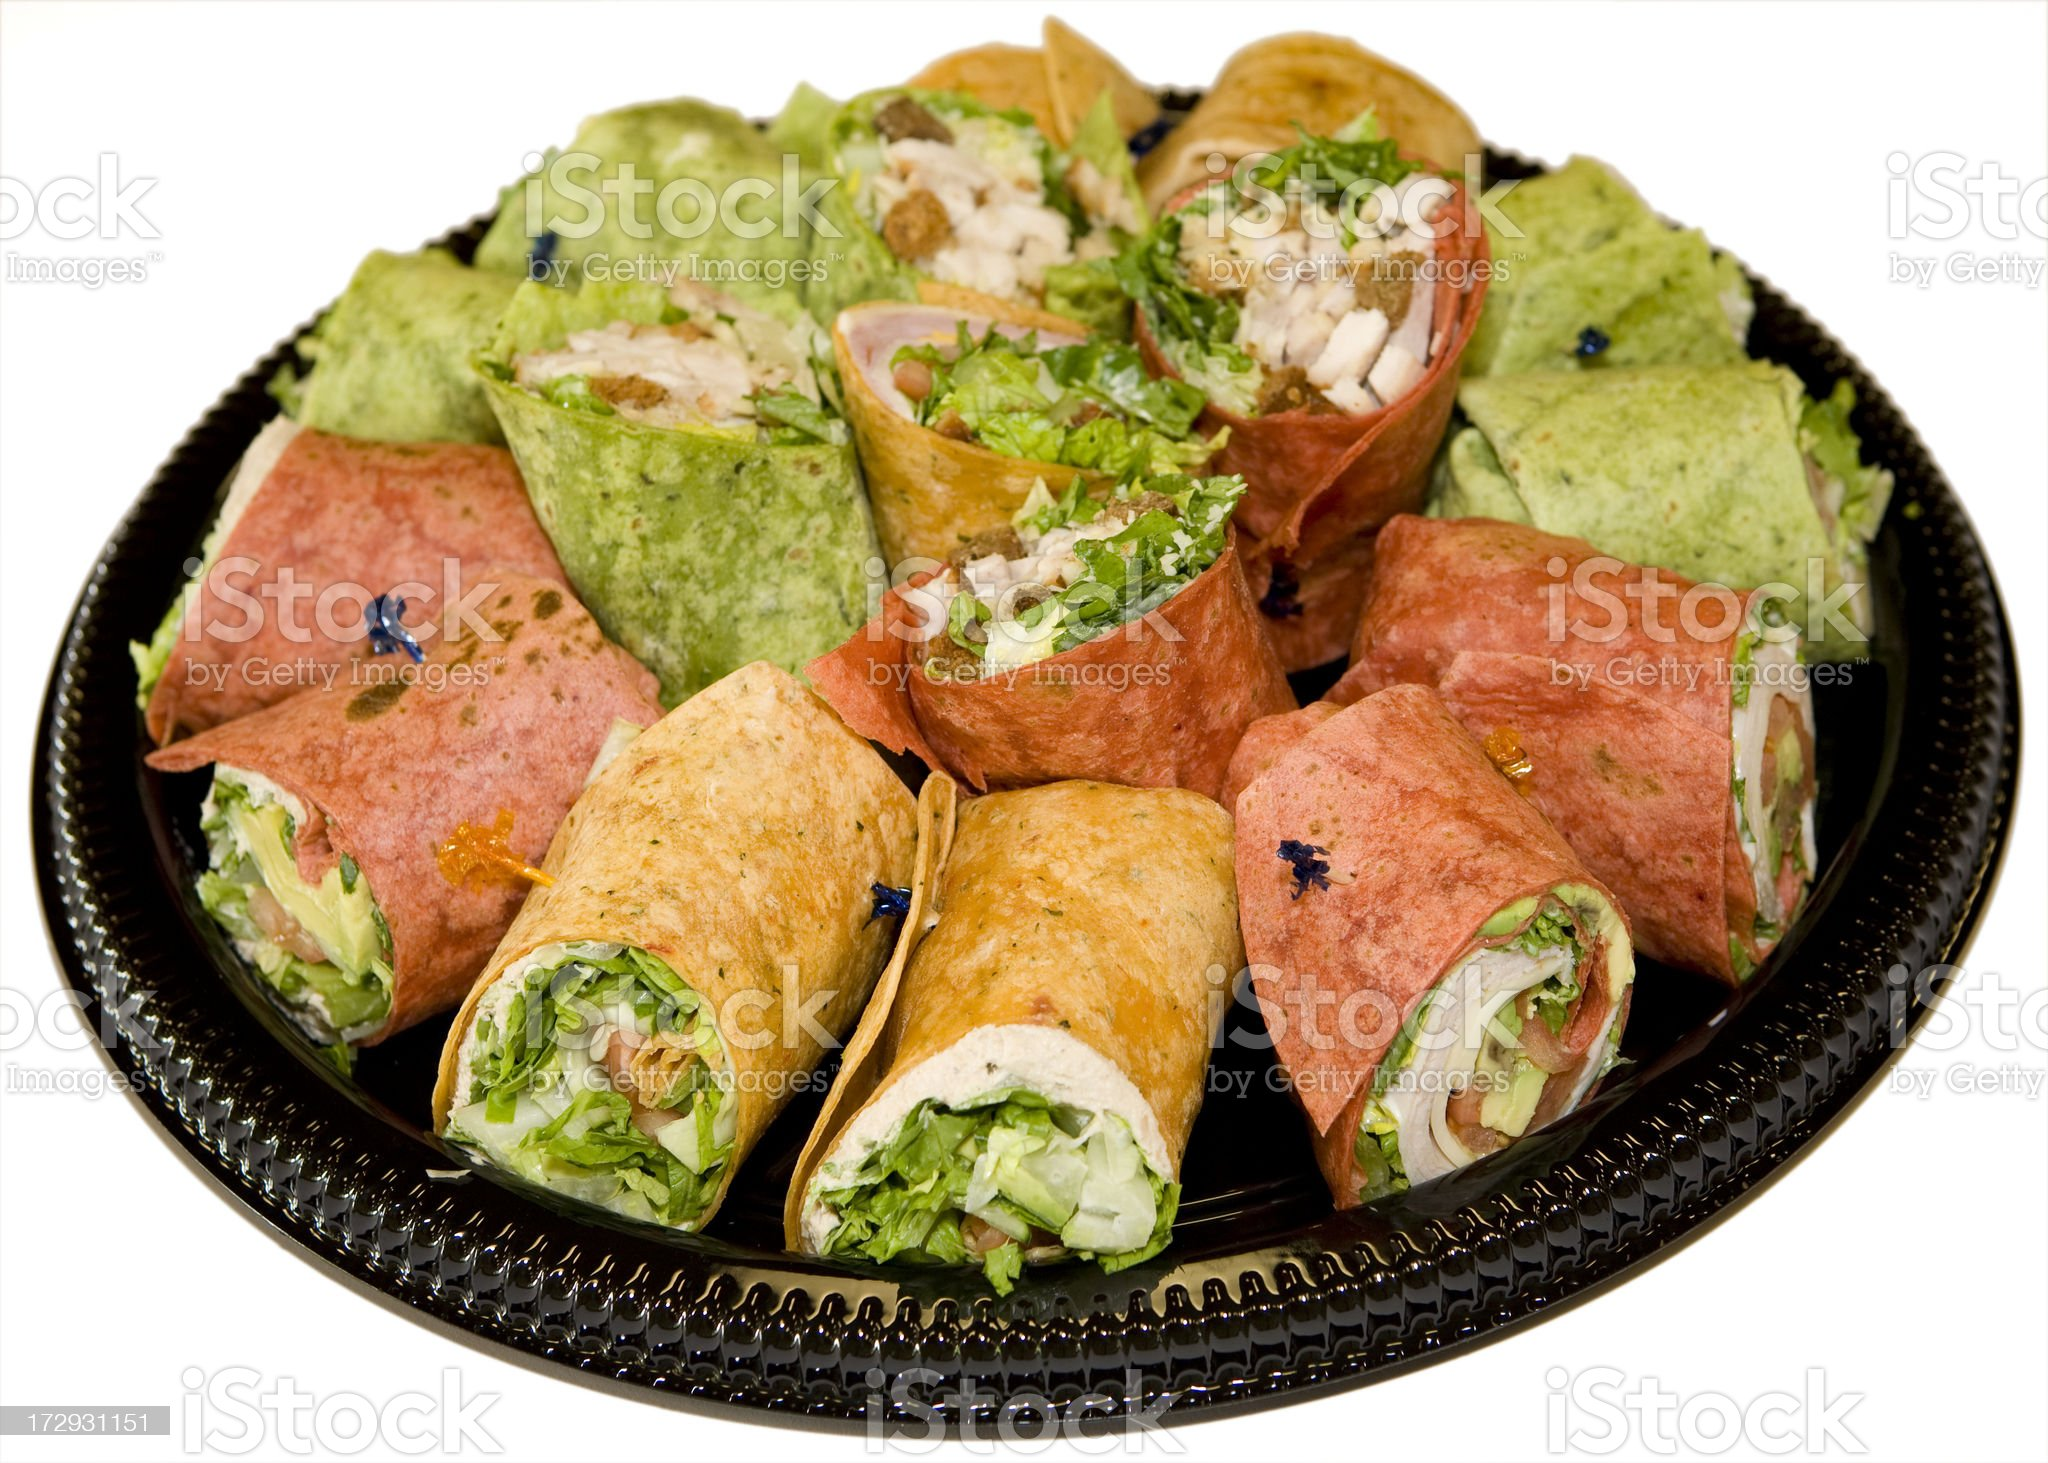 Wrap Sandwiches royalty-free stock photo